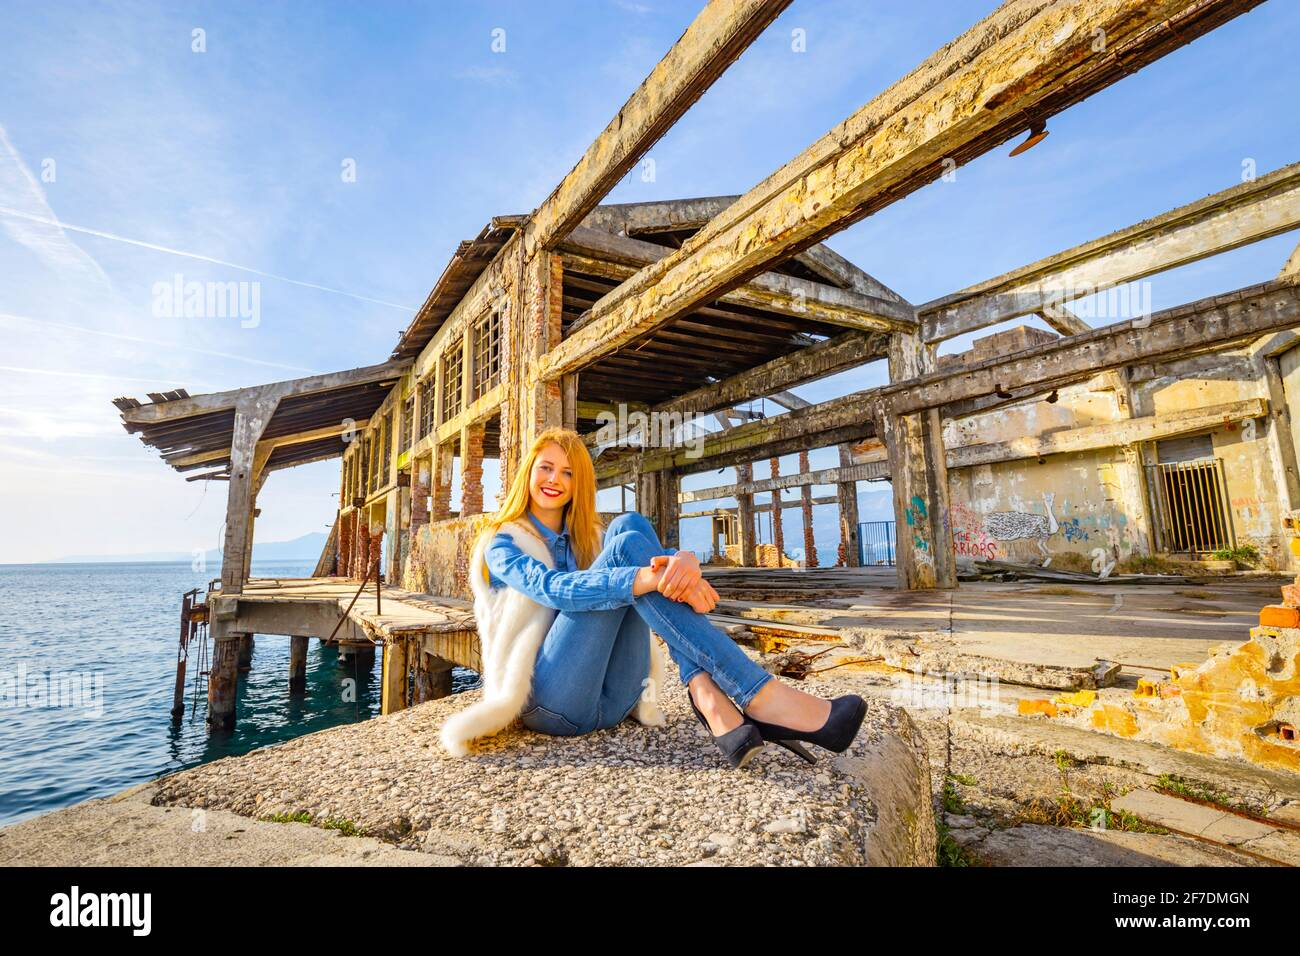 Teengirl blonde smiling at camera seated sitting ground before derelict industrial building framework ex warehouse wearing denim clothing legs heels Stock Photo